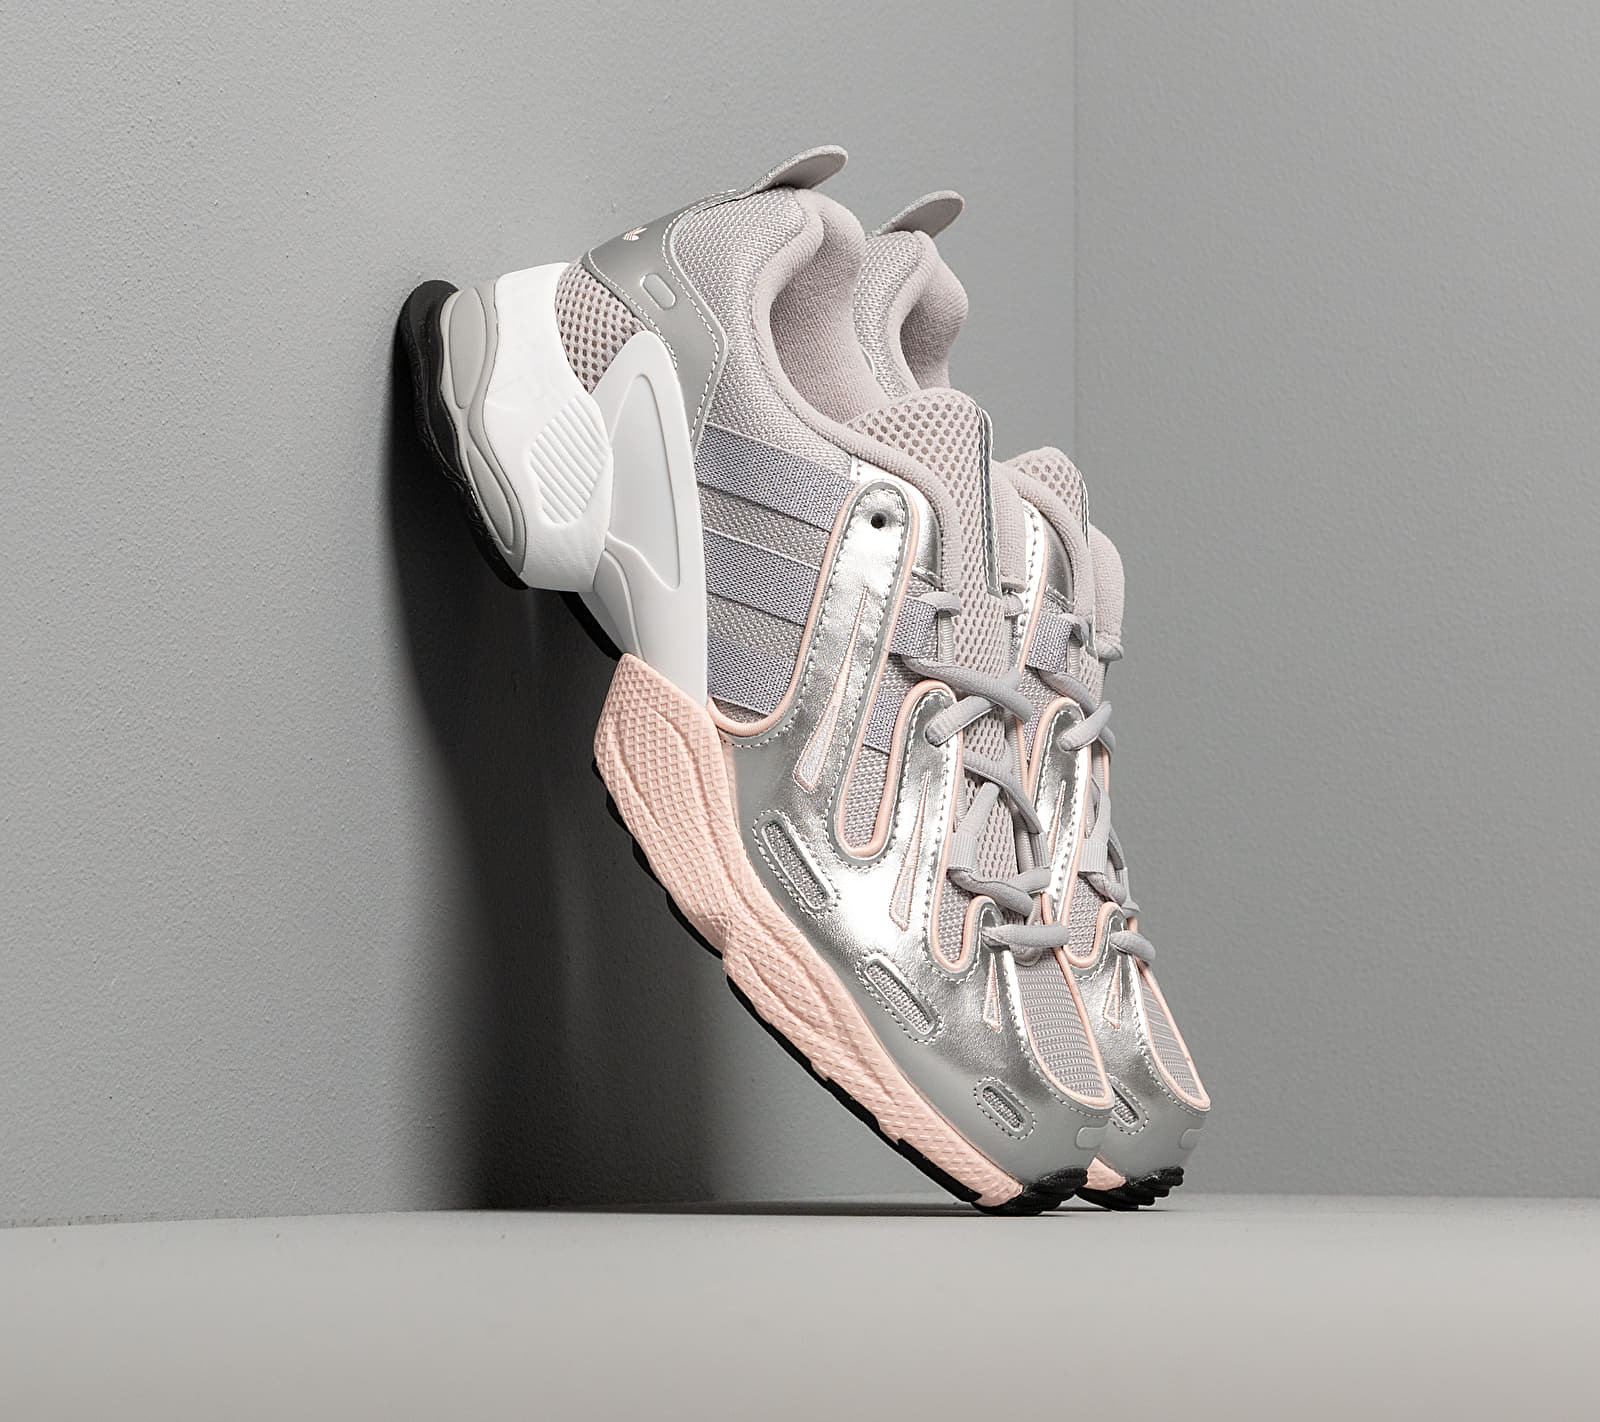 adidas EQT Gazelle W Grey Two/ Metalic Silver/ Ice Pink EUR 40 2/3